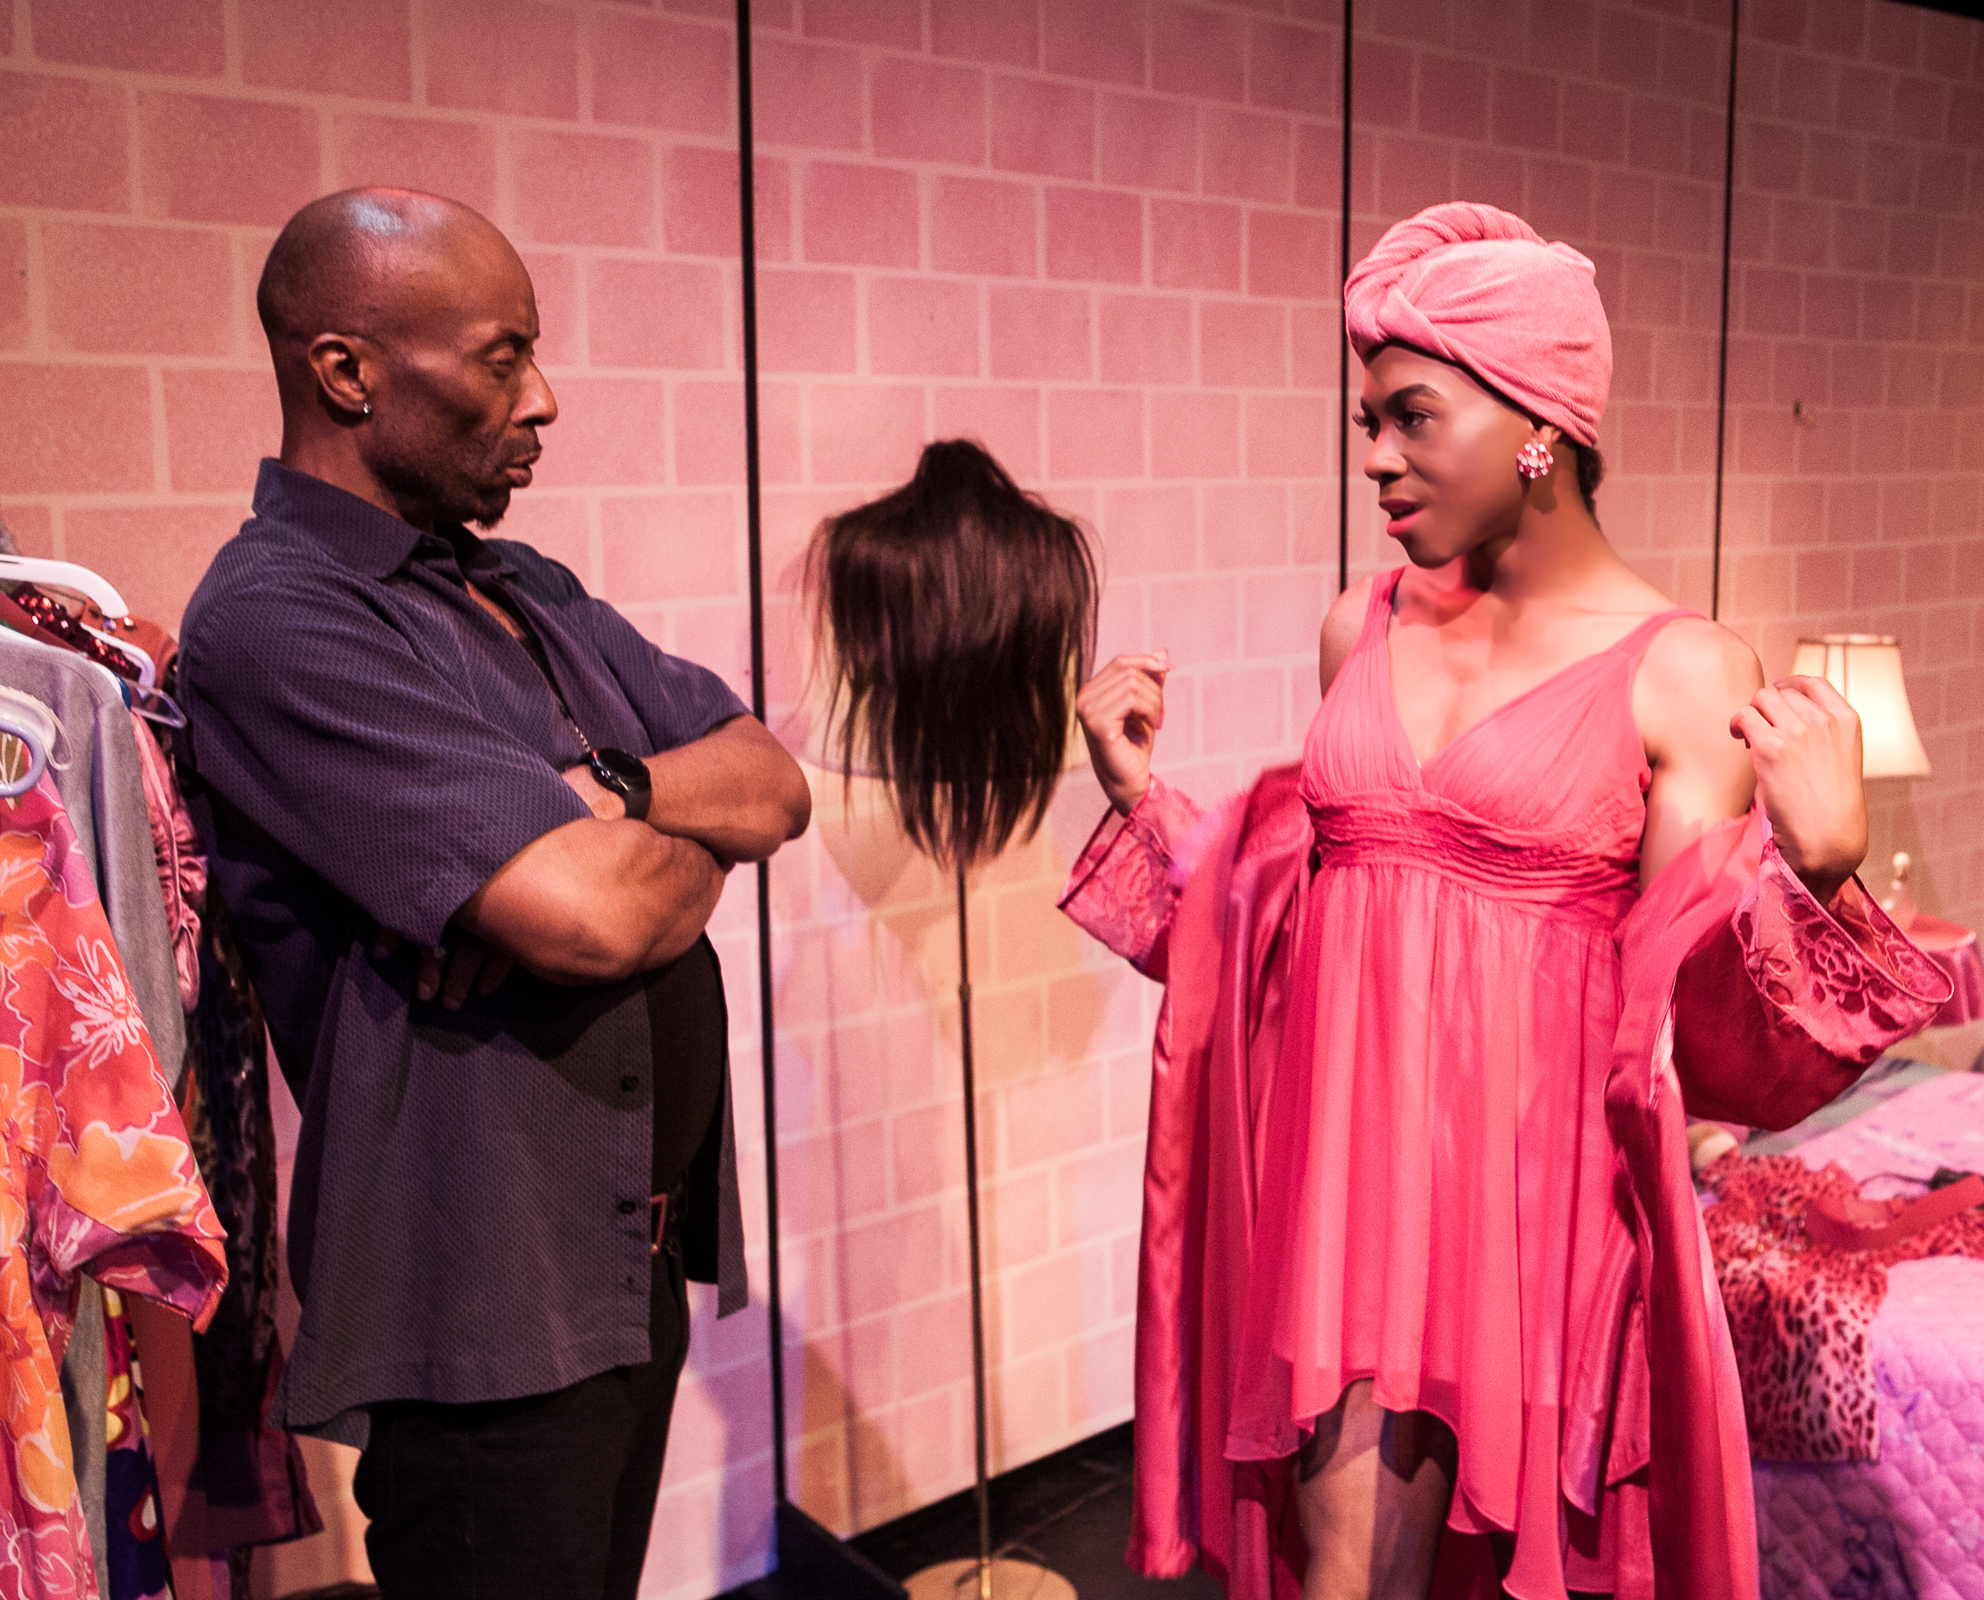 "Pictured left to right: R. Shawntez Jackson as Ace and Charles Peoples III as Pink in ""THE LEGEND OF PINK"" by Kheven LaGrone. Directed by AeJay Mitchell. A Theatre Rhinoceros Production at The Gateway Theatre (formerly The Eureka Theatre.) Photo by David Wilson."